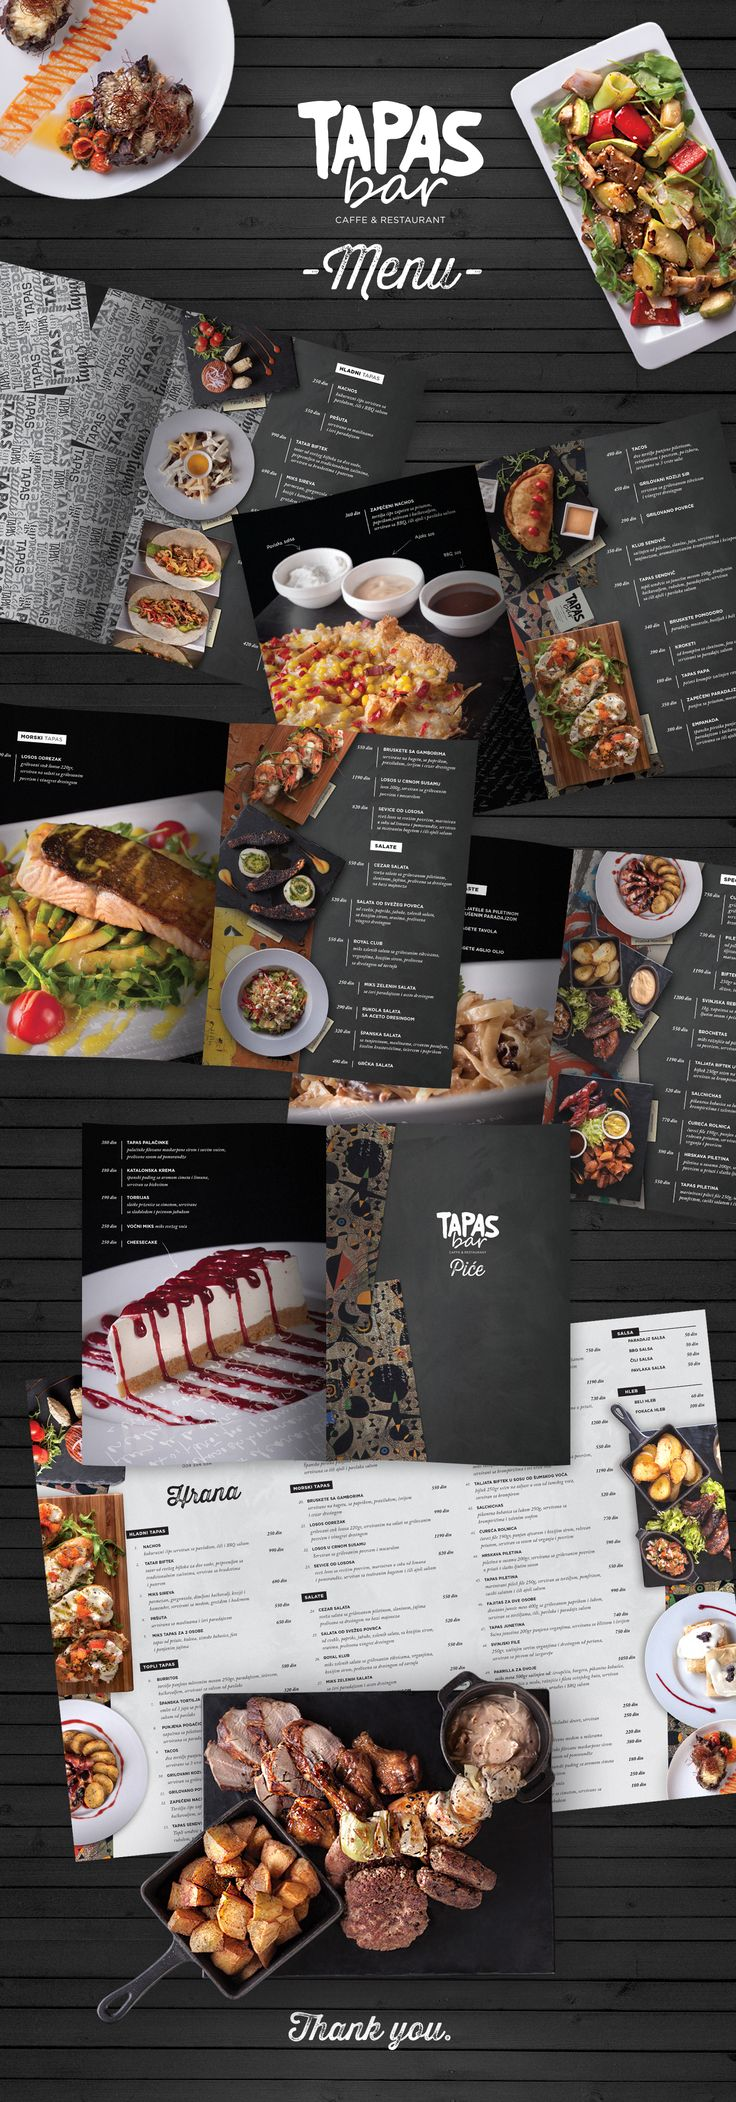 Menu design for Tapas Bar RestaurantDesign: Borko NerićPhotography: Strahinja Marković